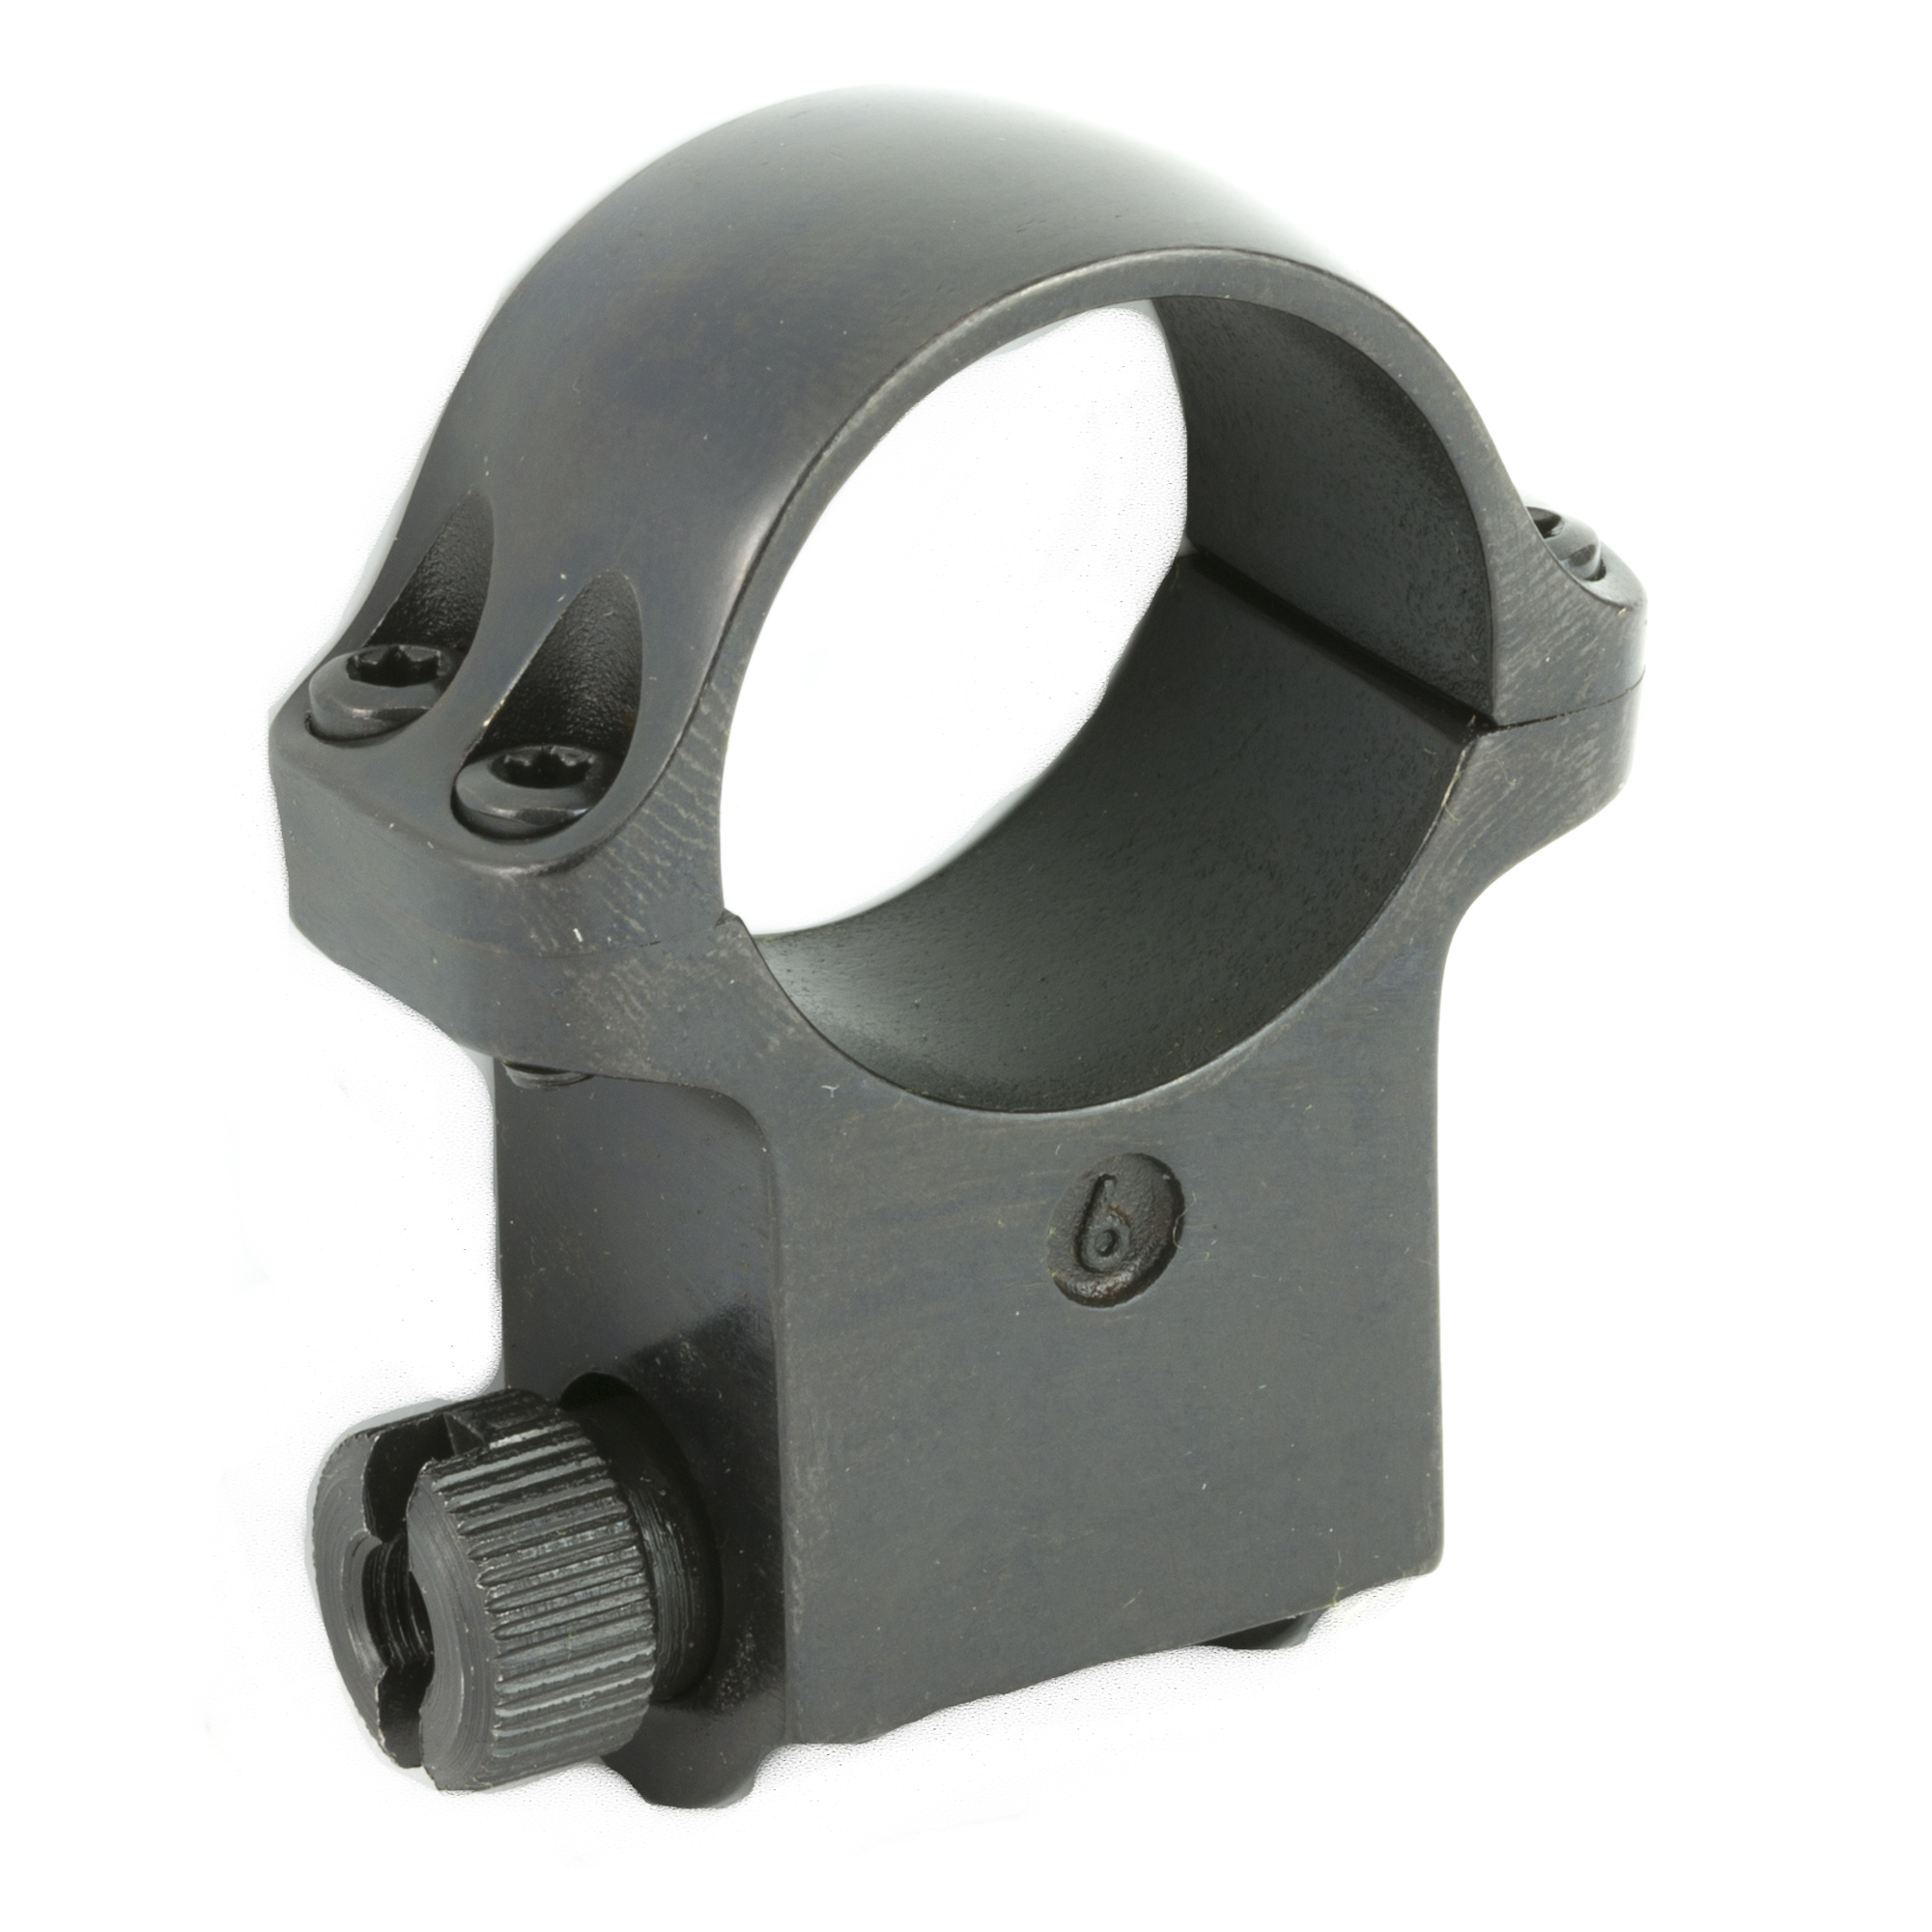 X-High Scope Ring with a Blued Finish. Designed to fit a scope with a one-inch scope tube diameter and a 62 MM objective diameter. Sold individually.